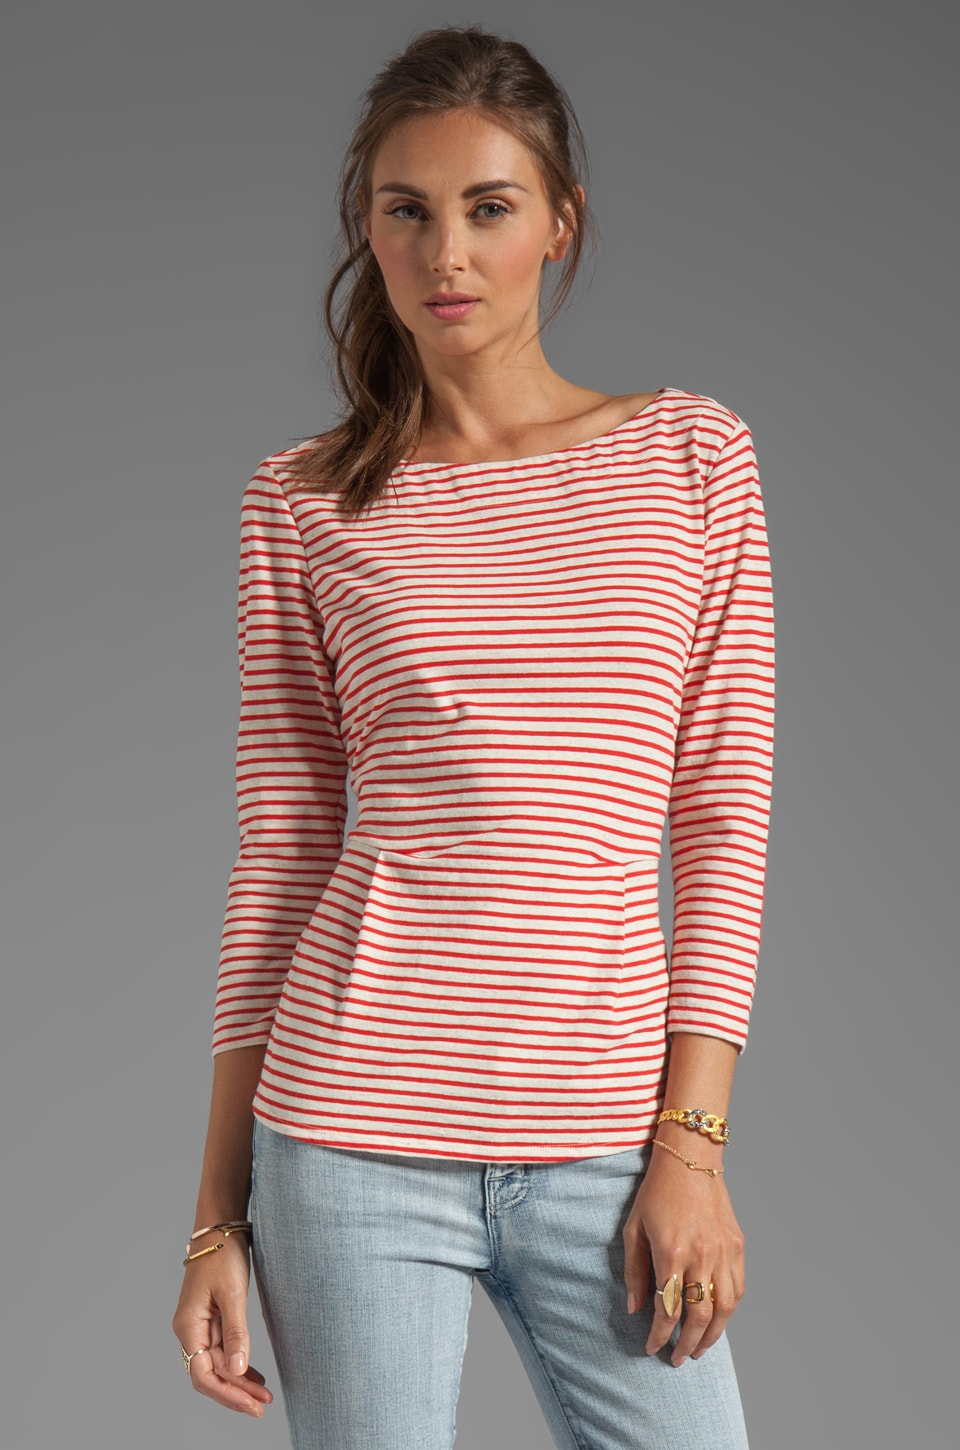 Rebecca Taylor Striped Demi Peplum Tee in Red Stripe